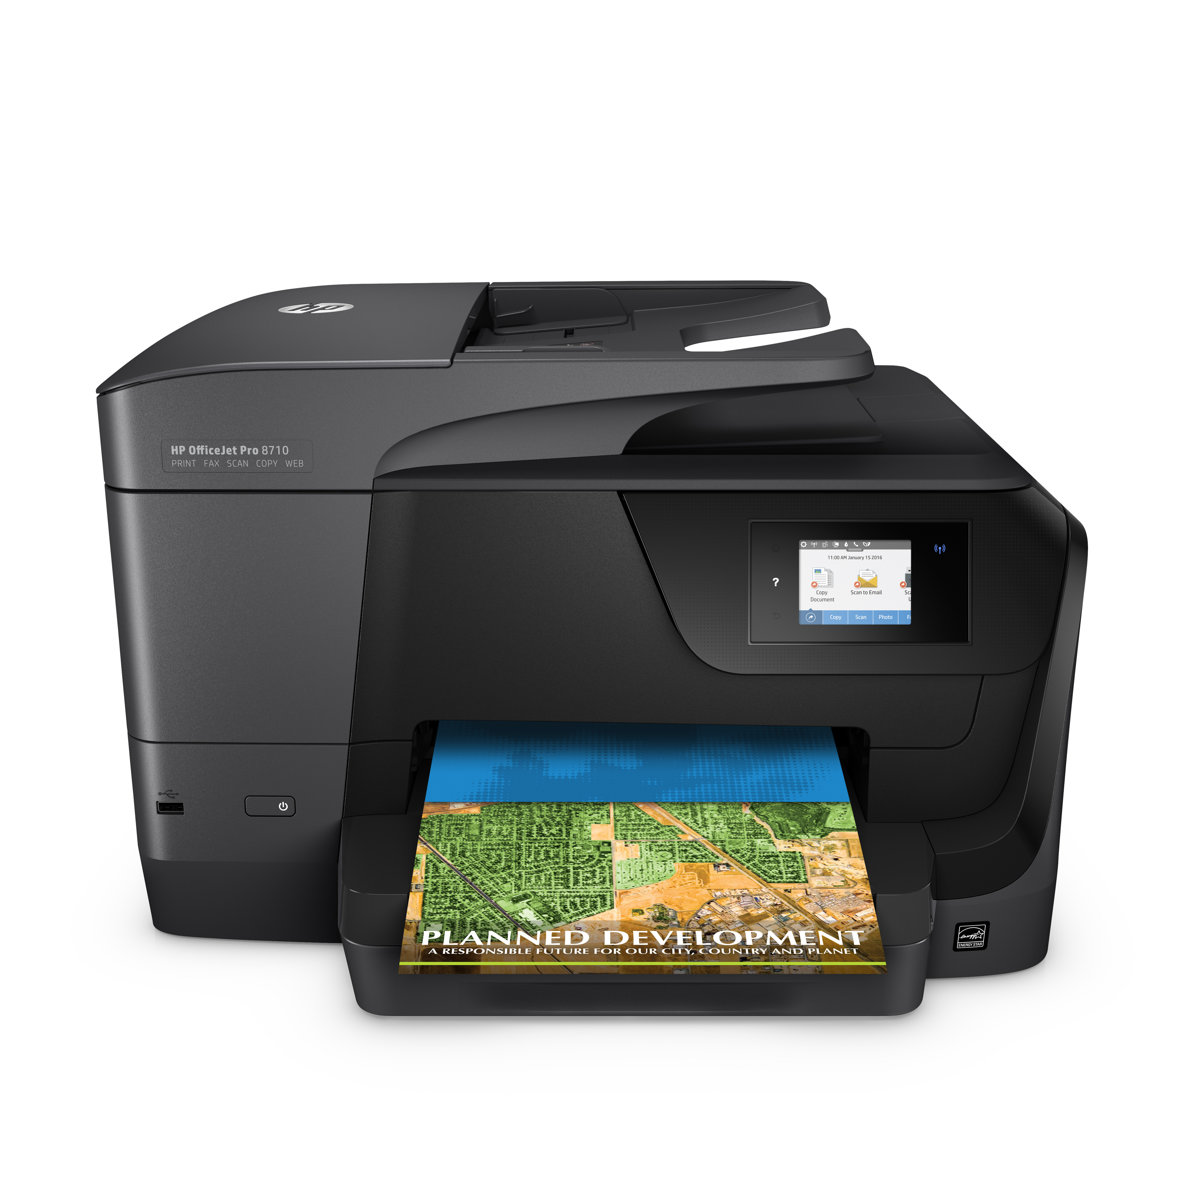 Inkjet Printers at Office Depot and OfficeMax